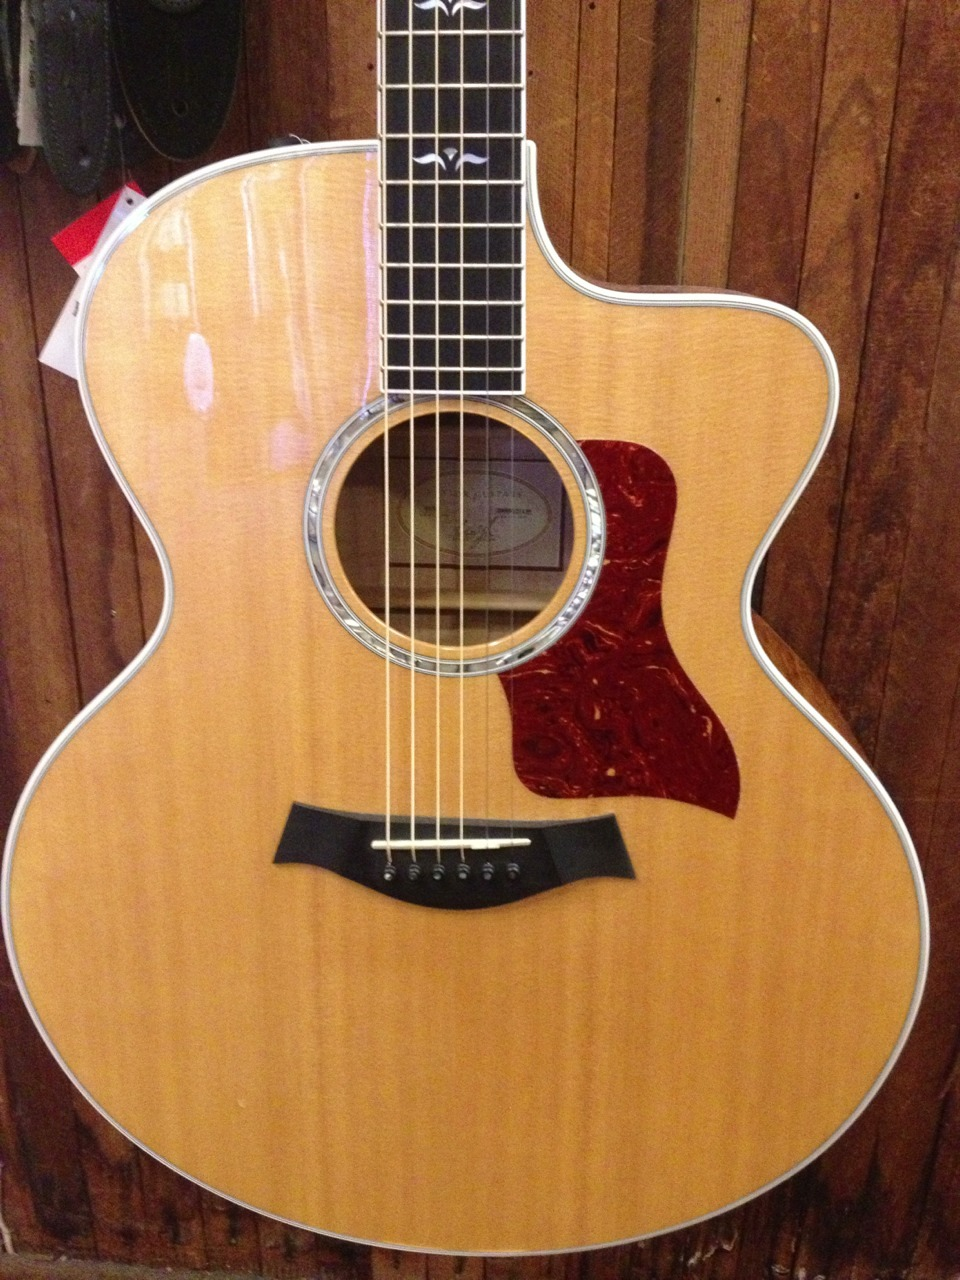 Taylor 615-CE Pre-Owned w/Case Maple/Sitka Spruce Price: $2595.00